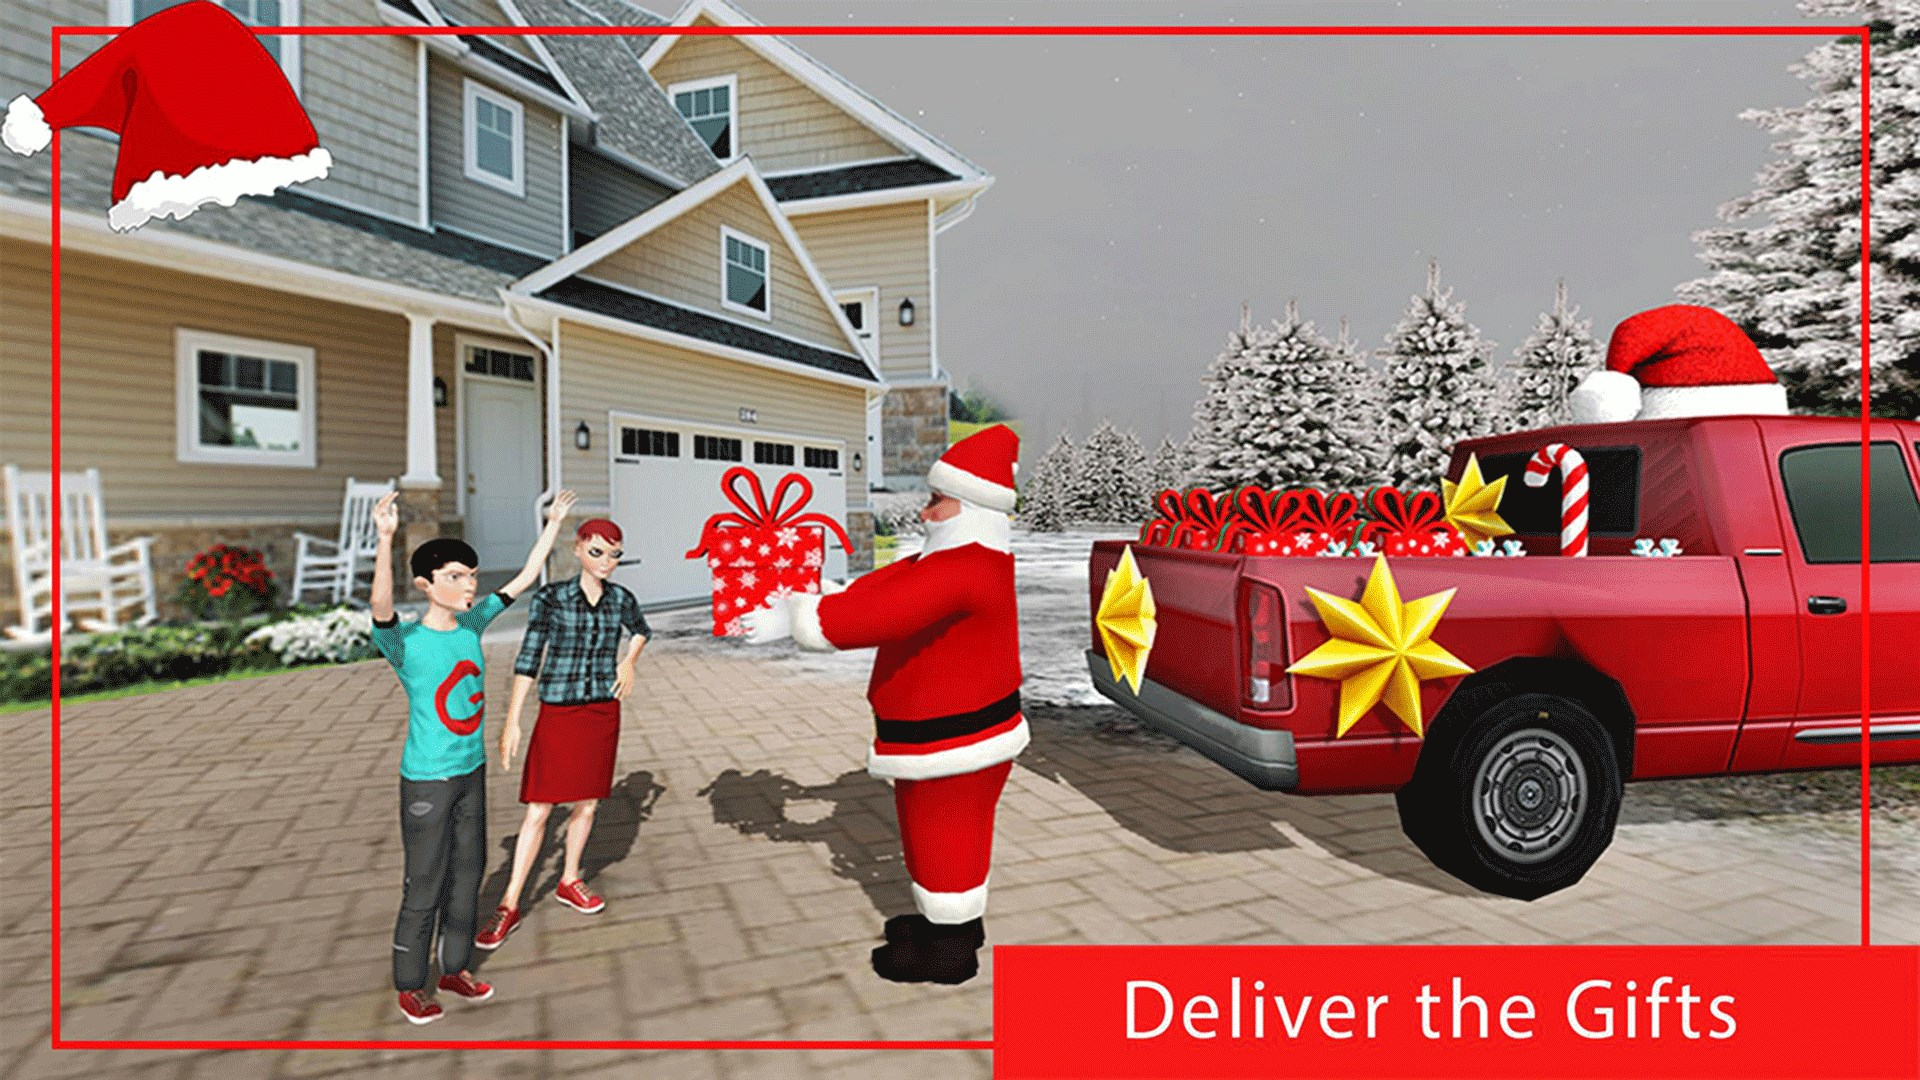 Get Santa Christmas Gift Delivery Game 2018 - Microsoft Store